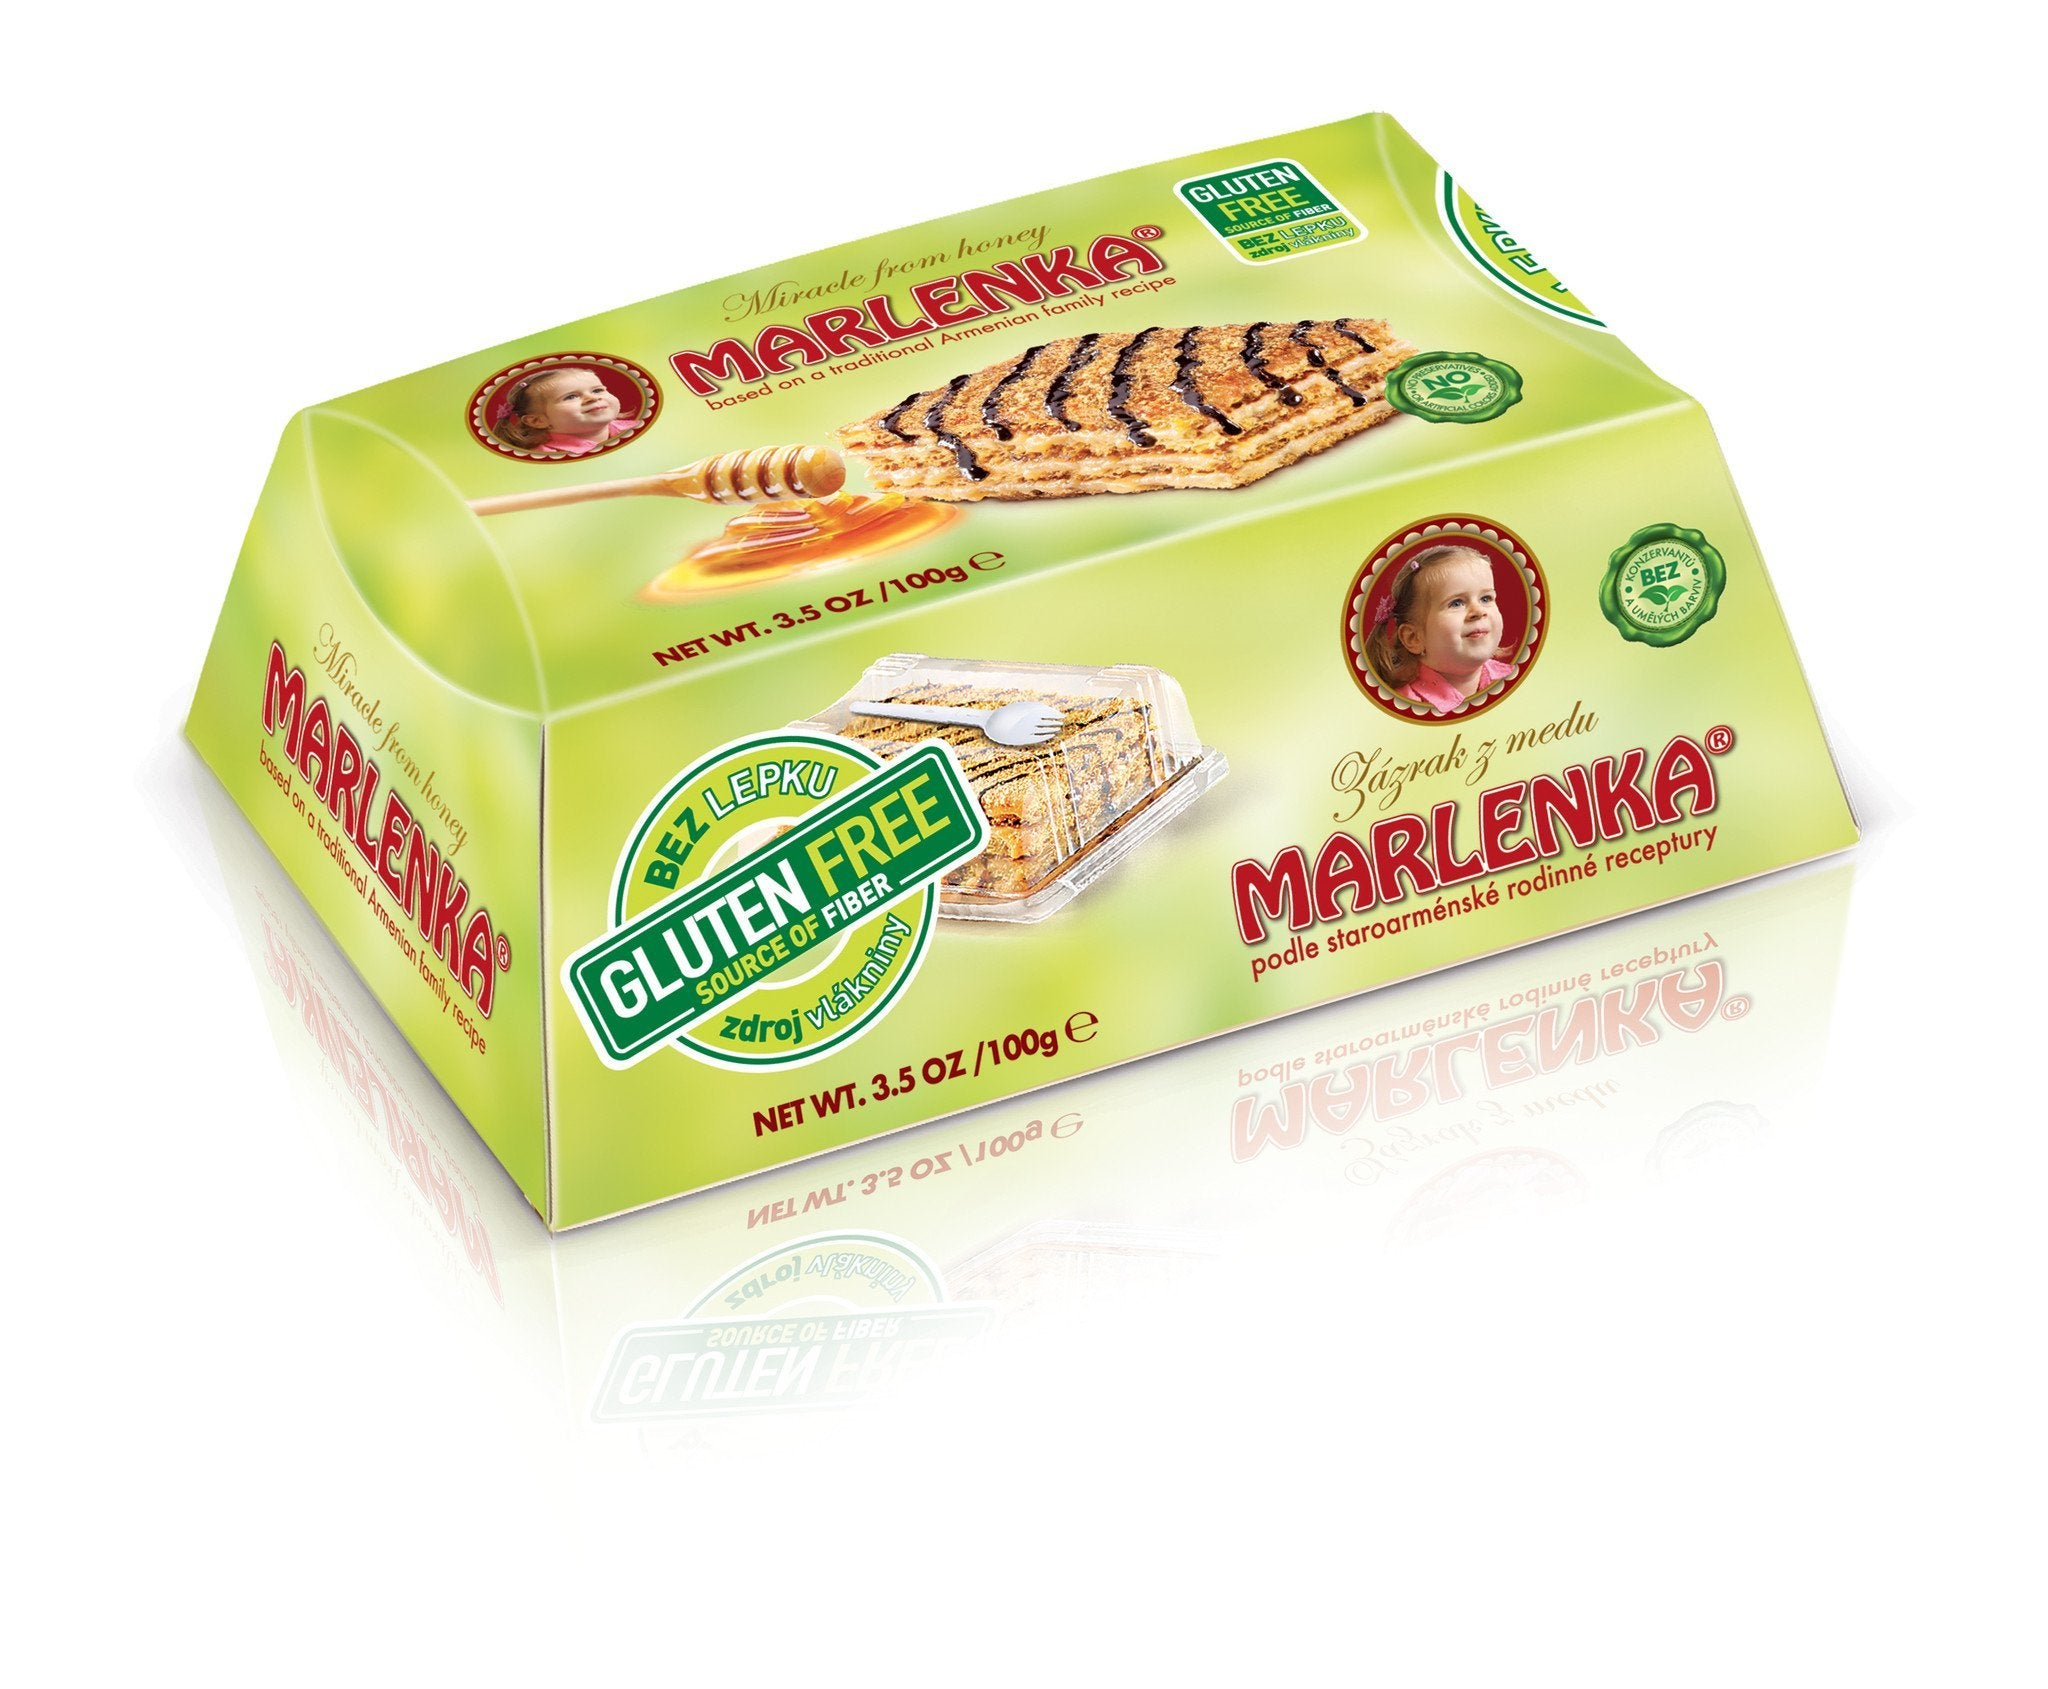 Gluten-Free Baby Cake with walnuts - MARLENKA UK